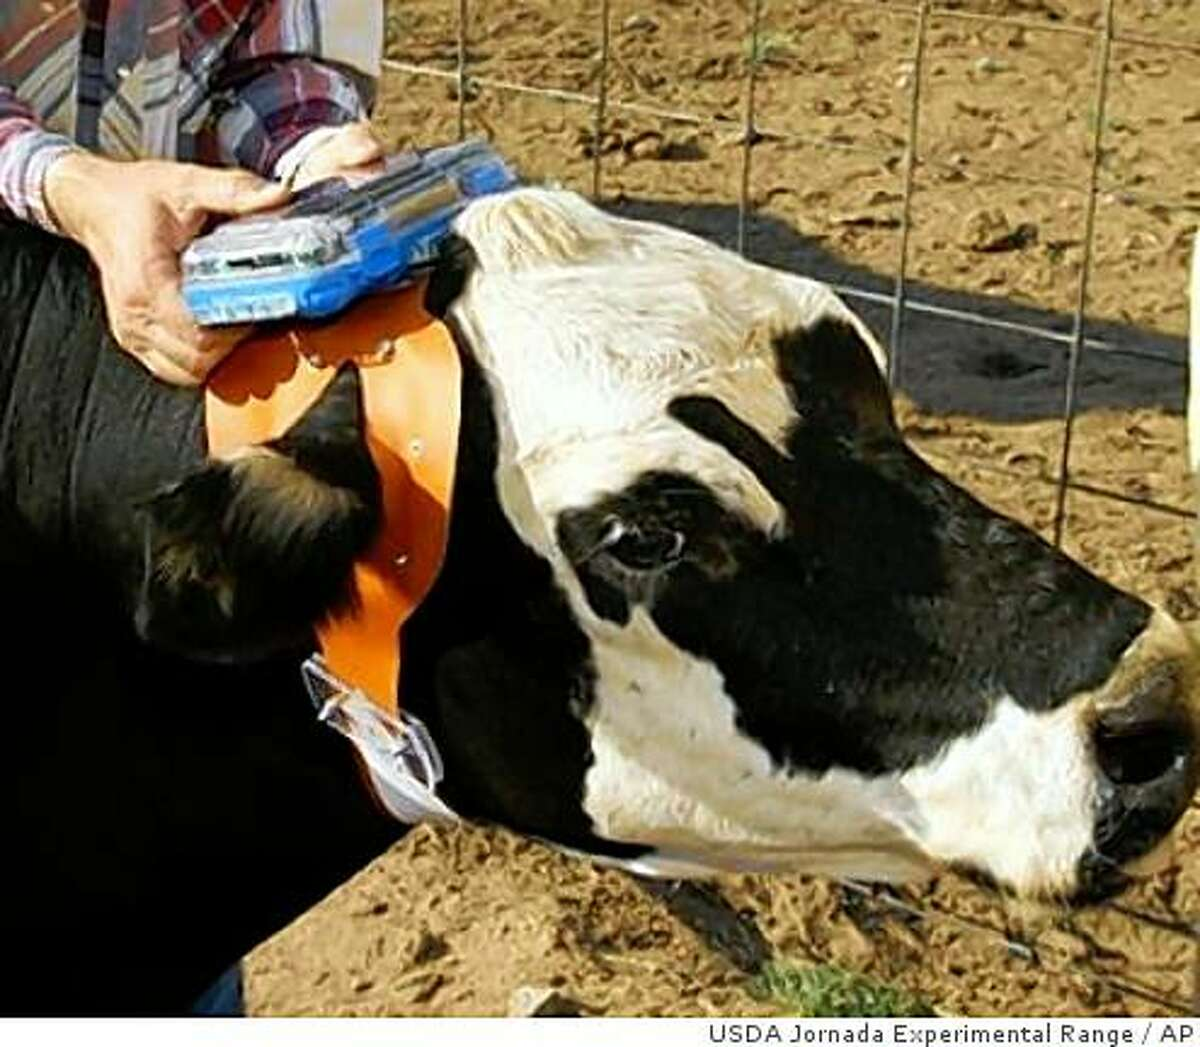 This July 2007 photo provided by the USDA's Jornada Experimental Range shows a cow being outfitted with an early prototype of the